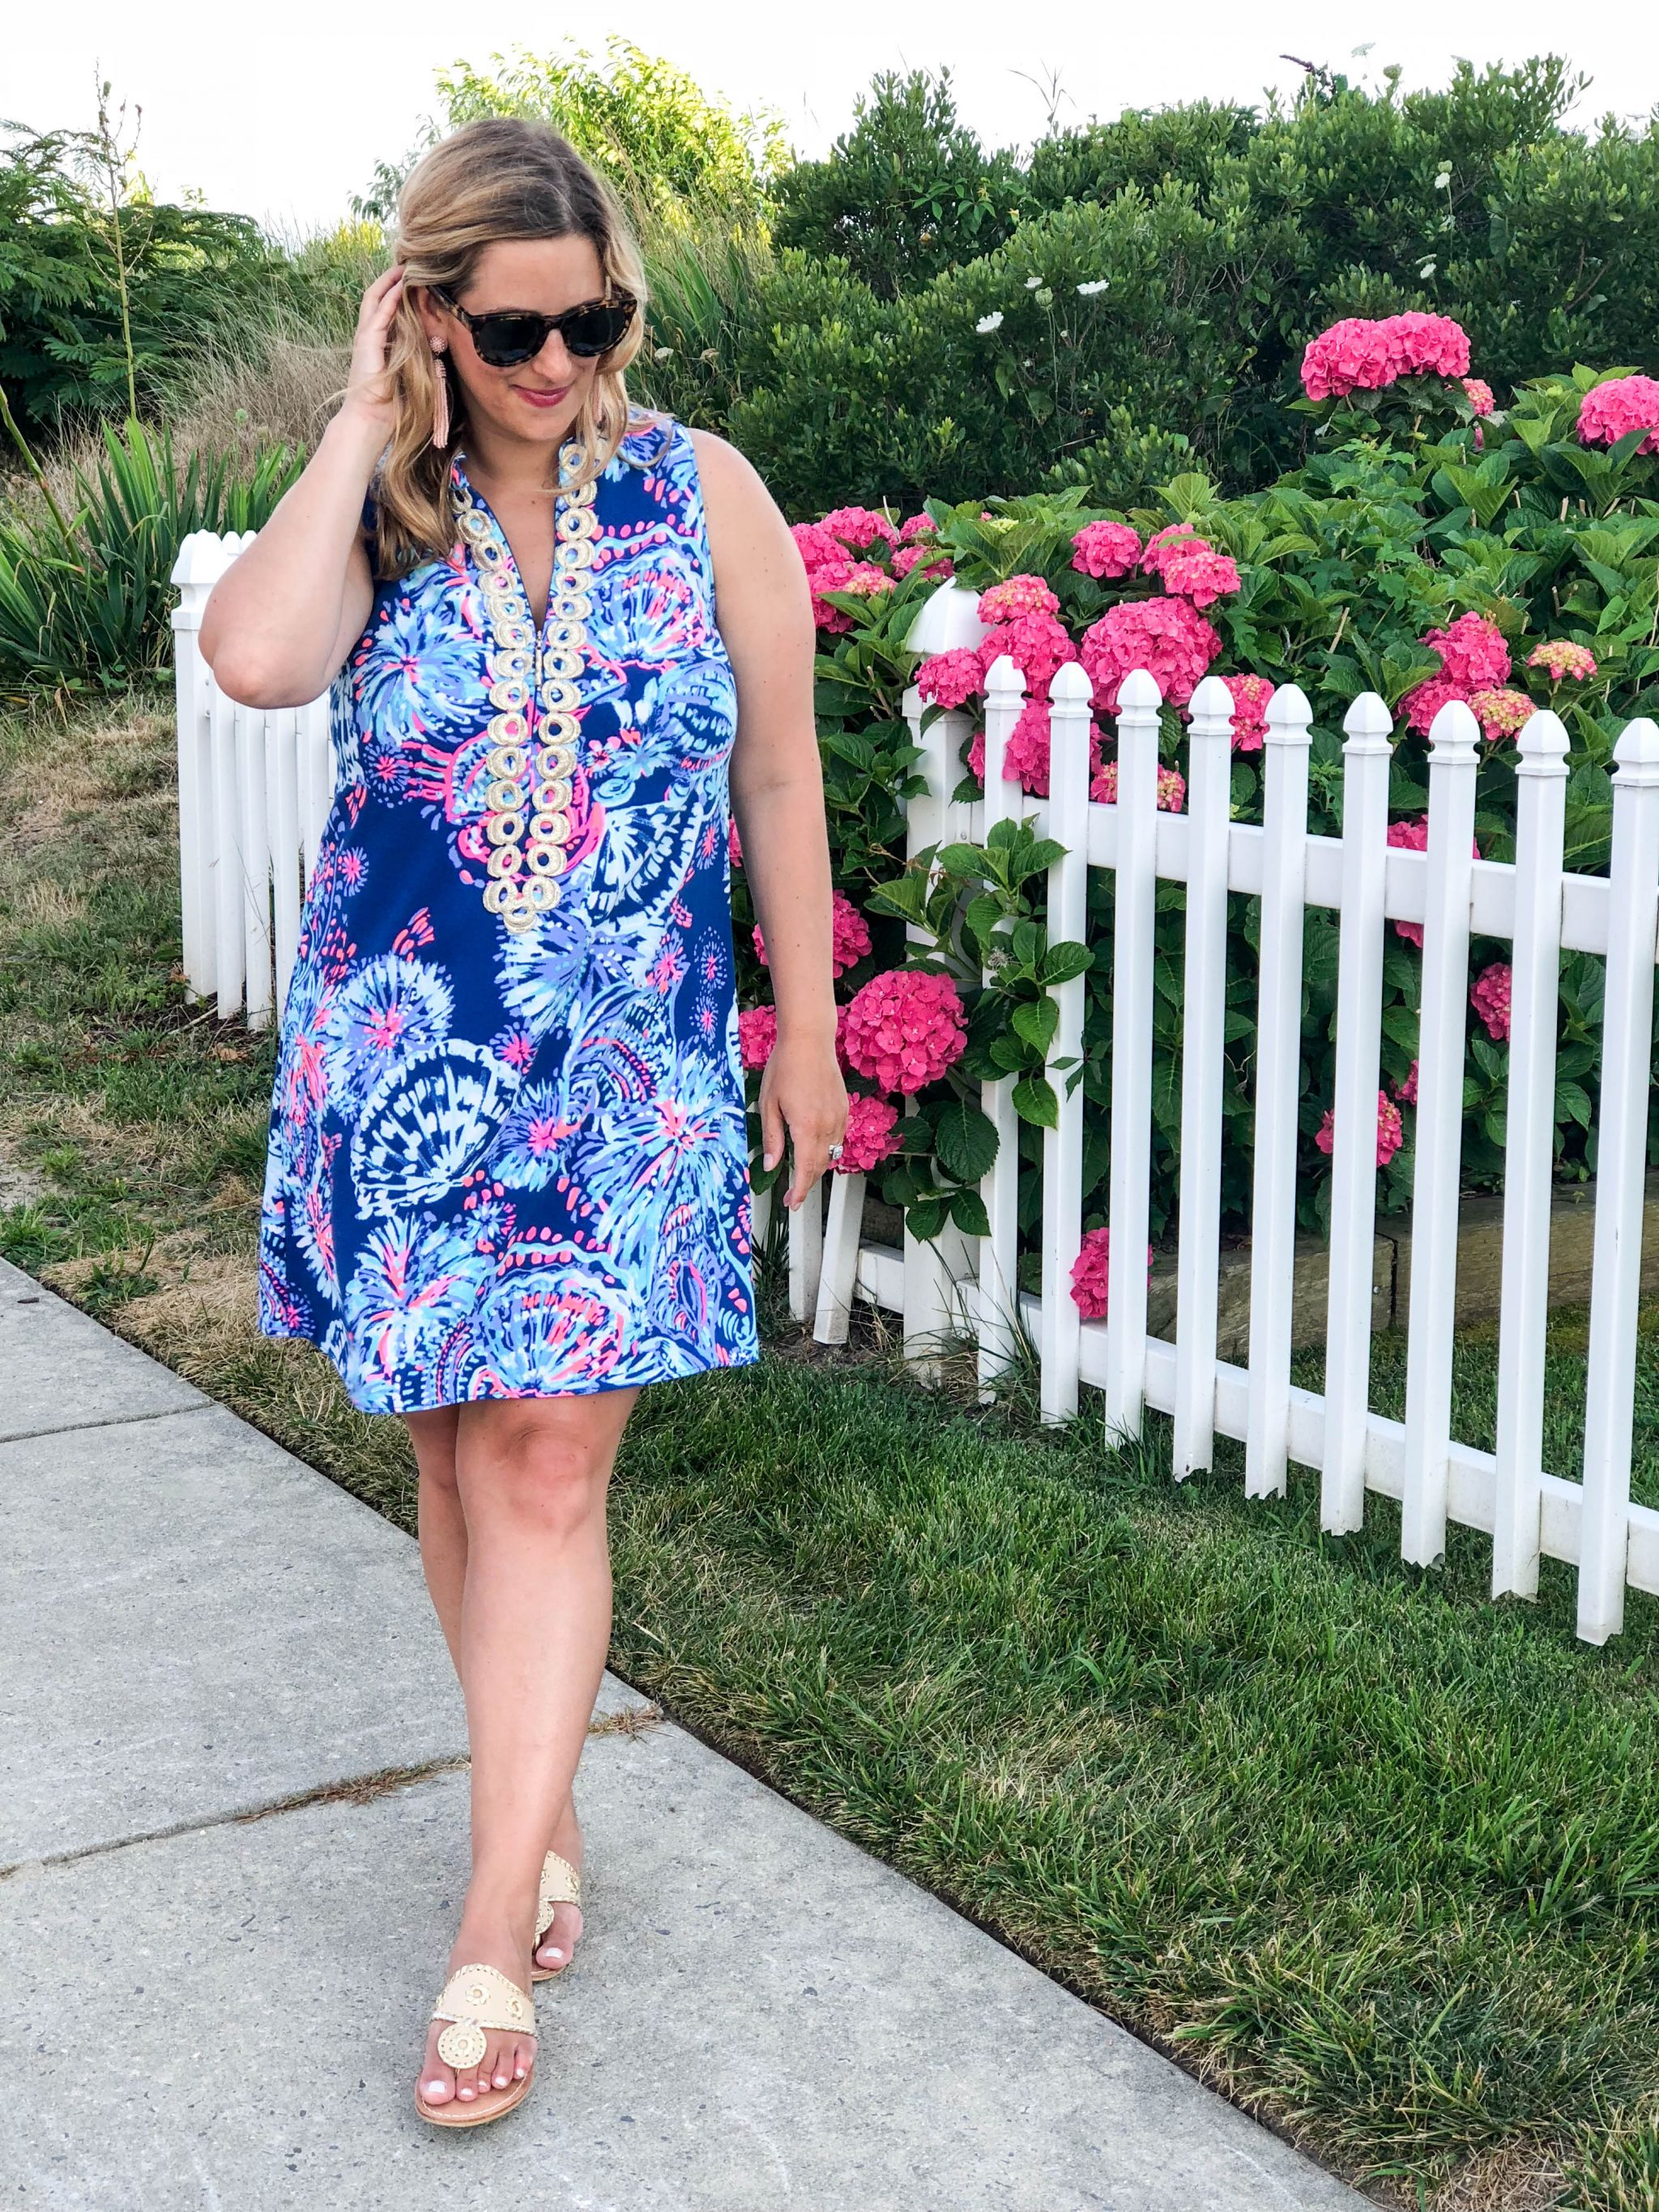 489bd6ac7b Summer in Lilly- Lilly Pulitzer Jane Shift- Deep Indigo Gypsea Girl Lilly  pattern- Summer outfit- Boston Chic Party-2